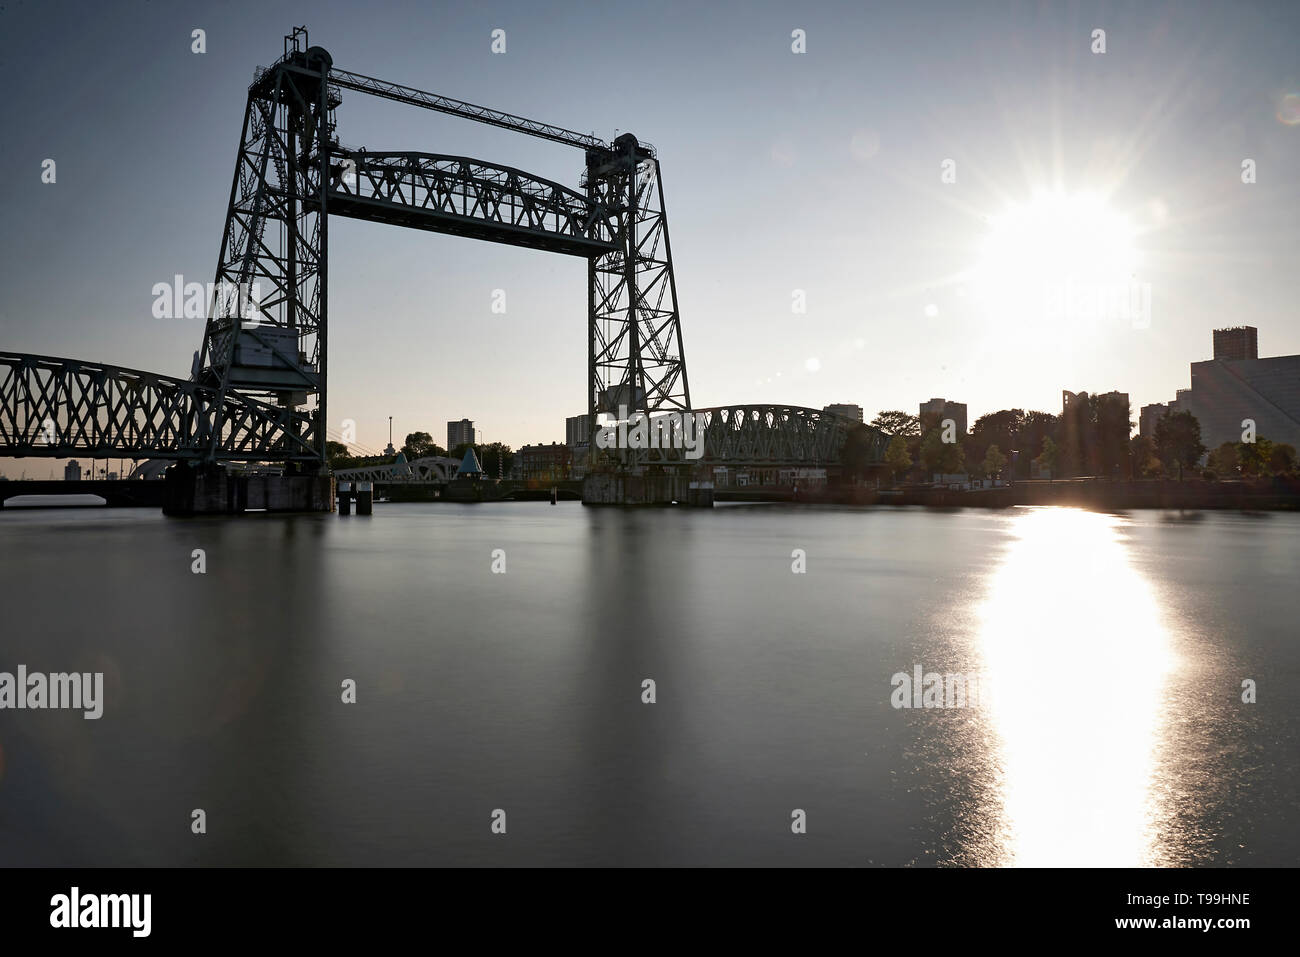 Old vertical lift bridge in the city centre of Rotterdam in spring sunshine - Stock Image